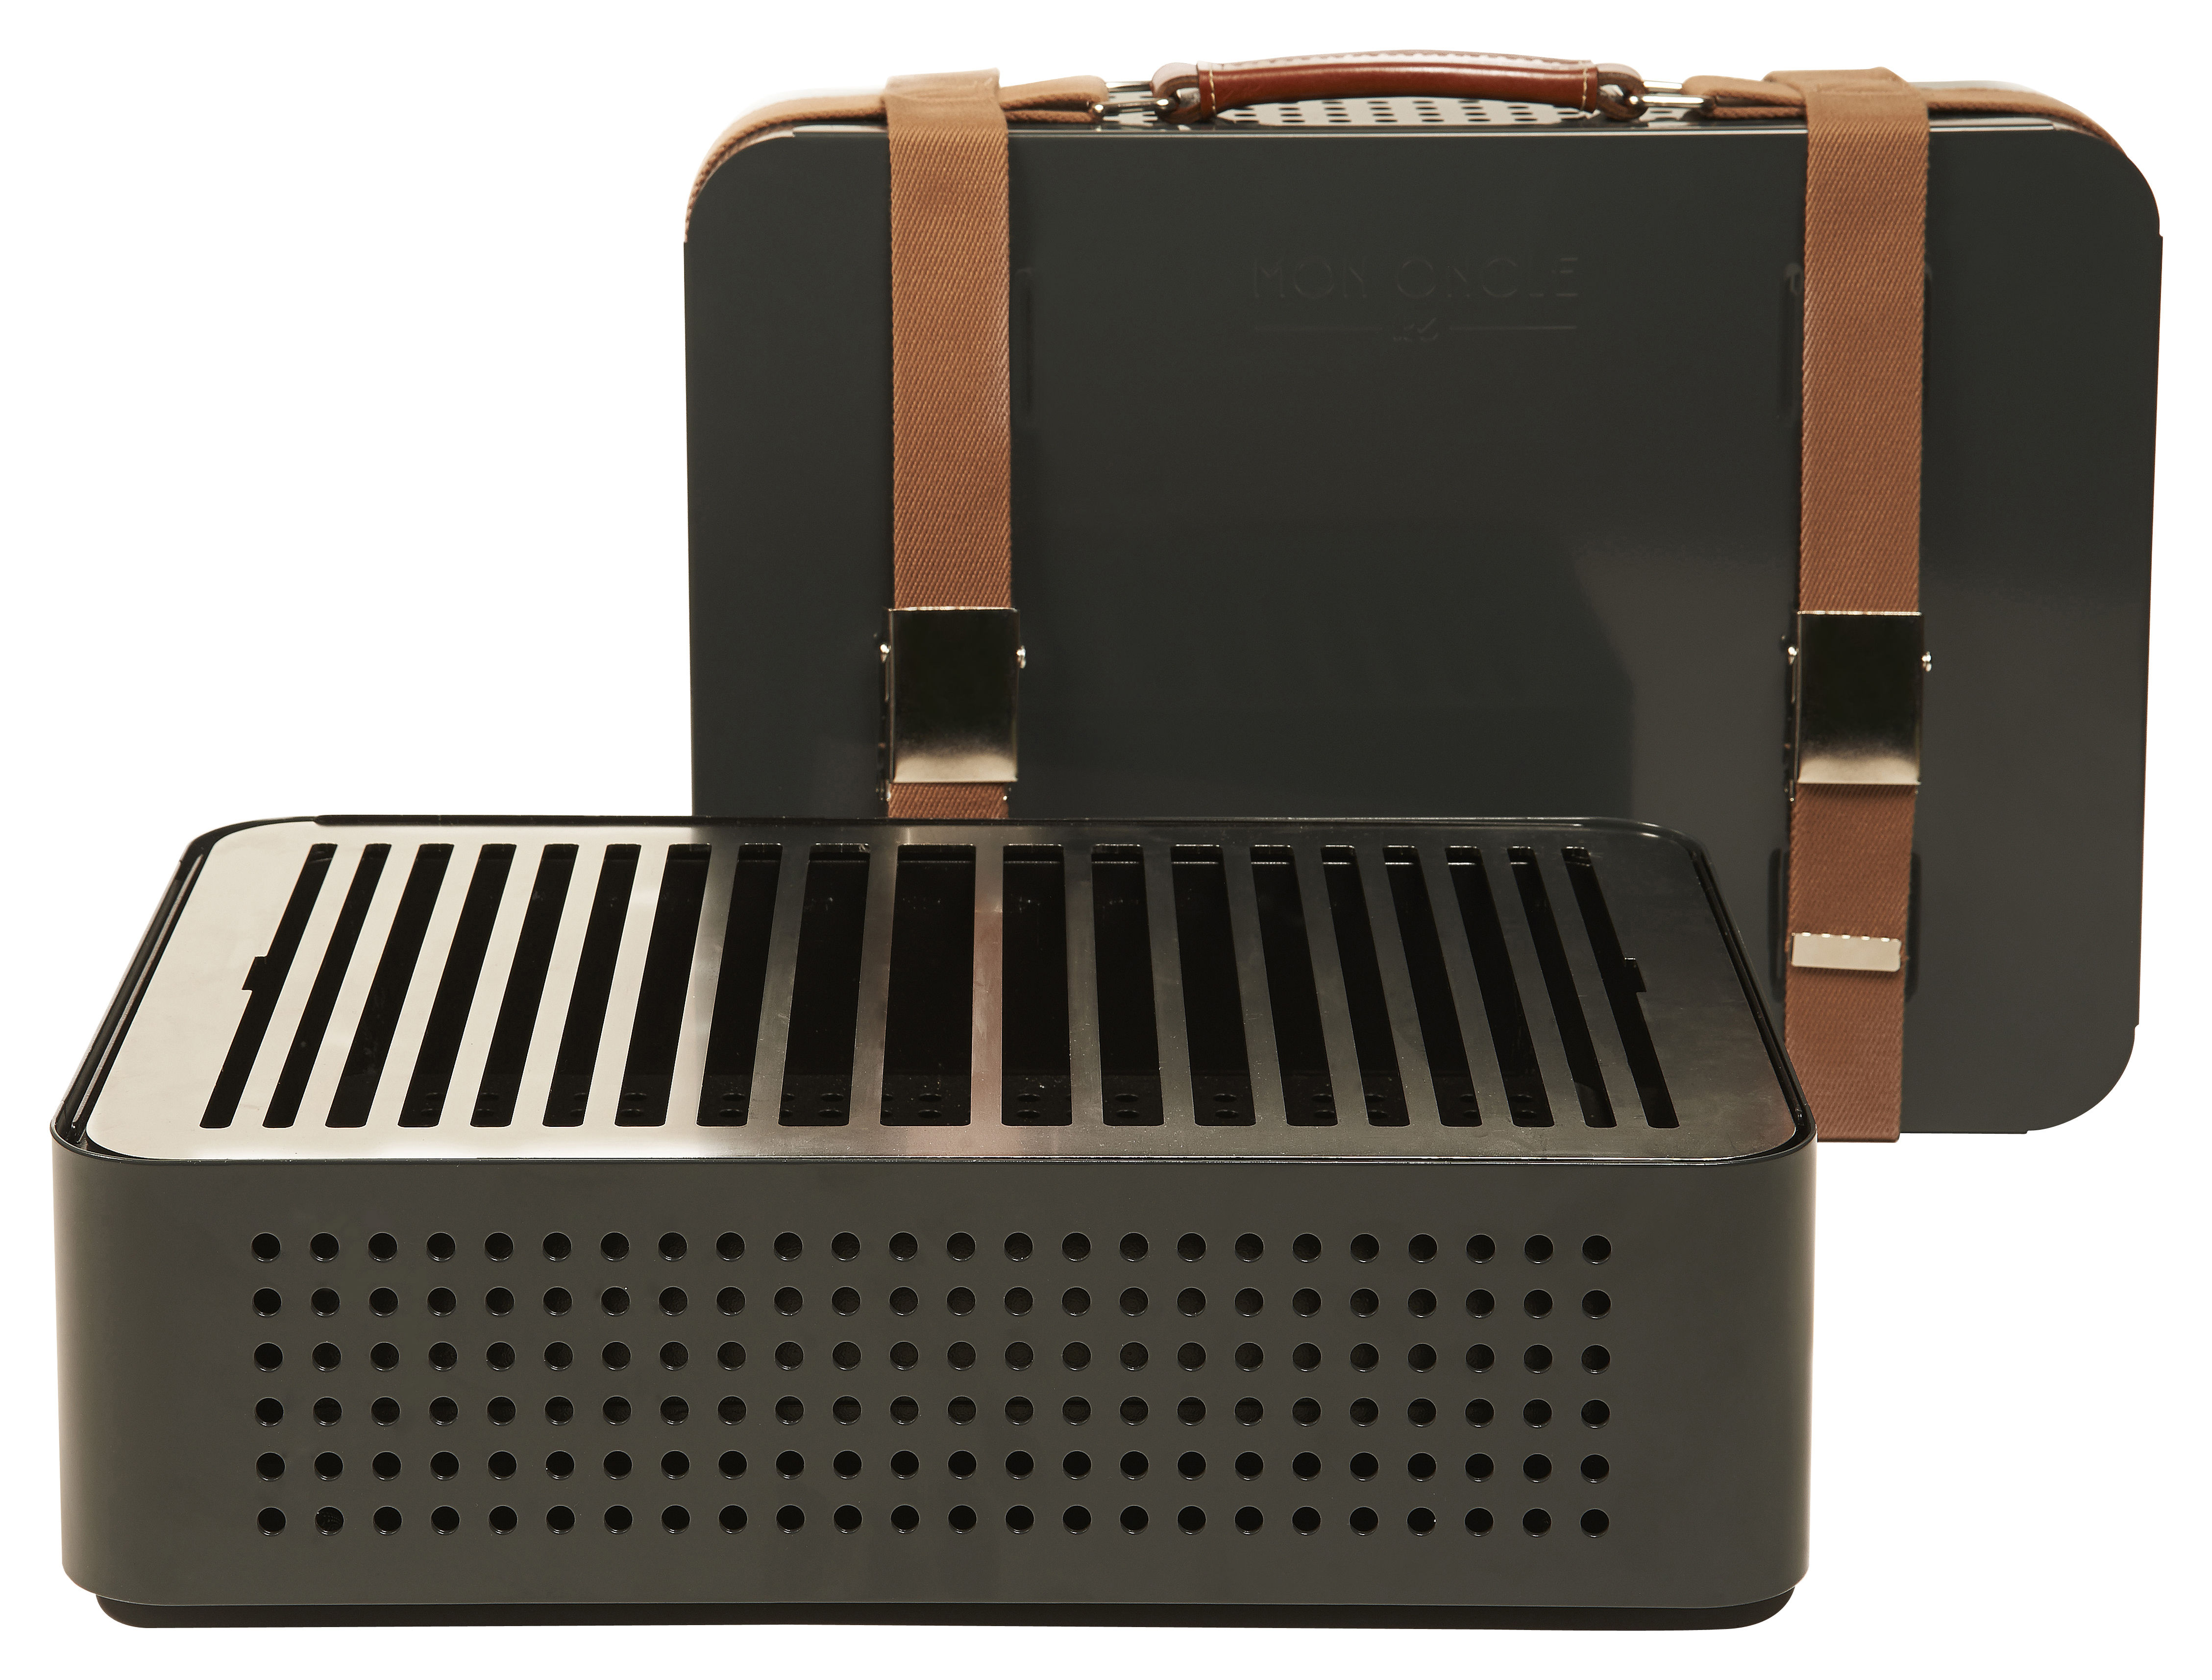 Outdoor - Barbecues & Charcoal Grills - Mon Oncle Movable charcoal barbecue by RS BARCELONA - Grey - Fabric, Leather, Painted stainless steel